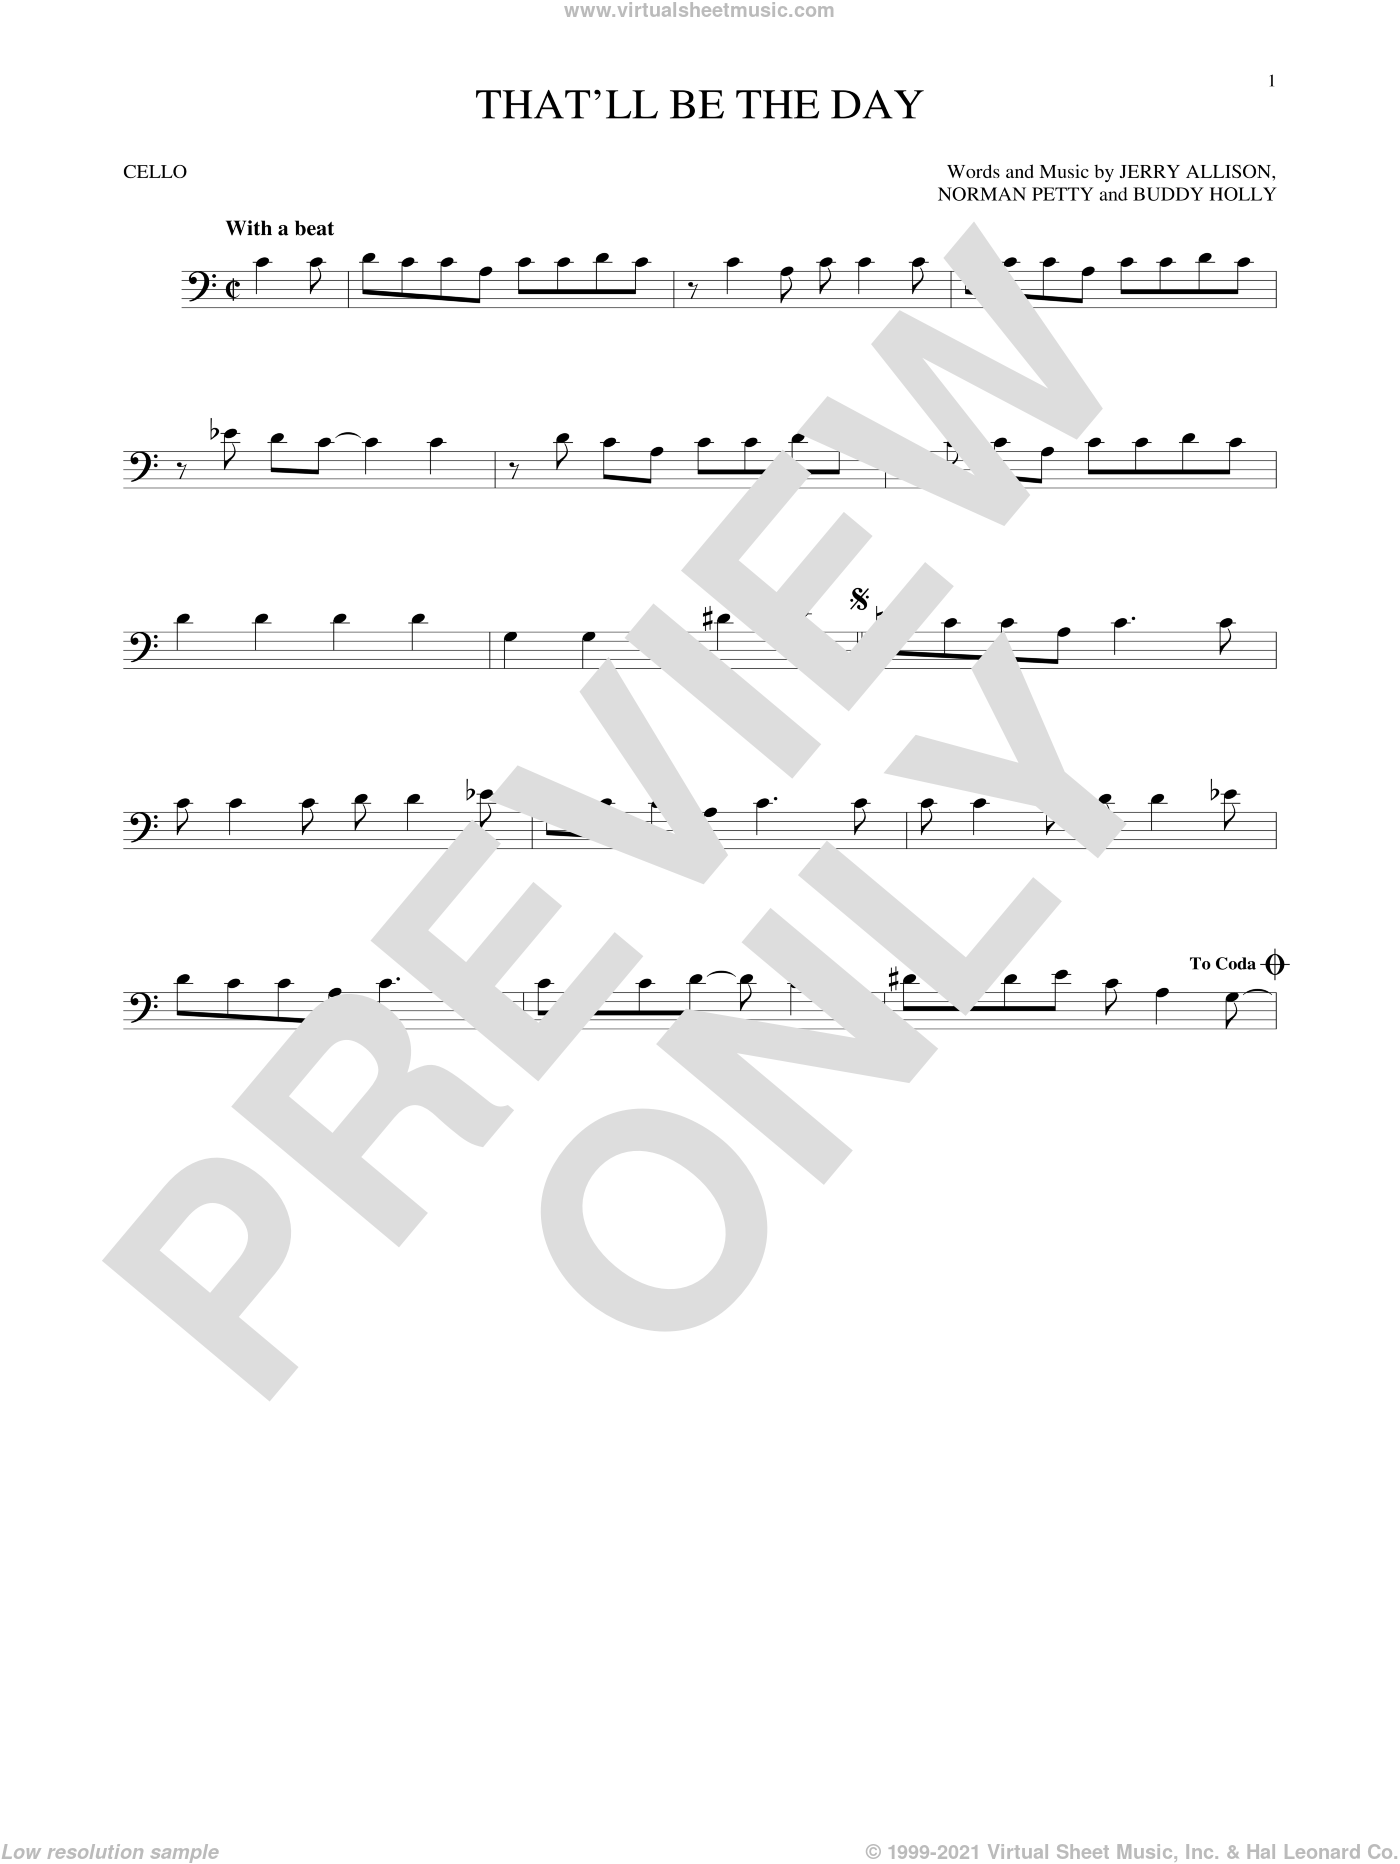 That'll Be The Day sheet music for cello solo by The Crickets, Buddy Holly, Jerry Allison and Norman Petty, intermediate